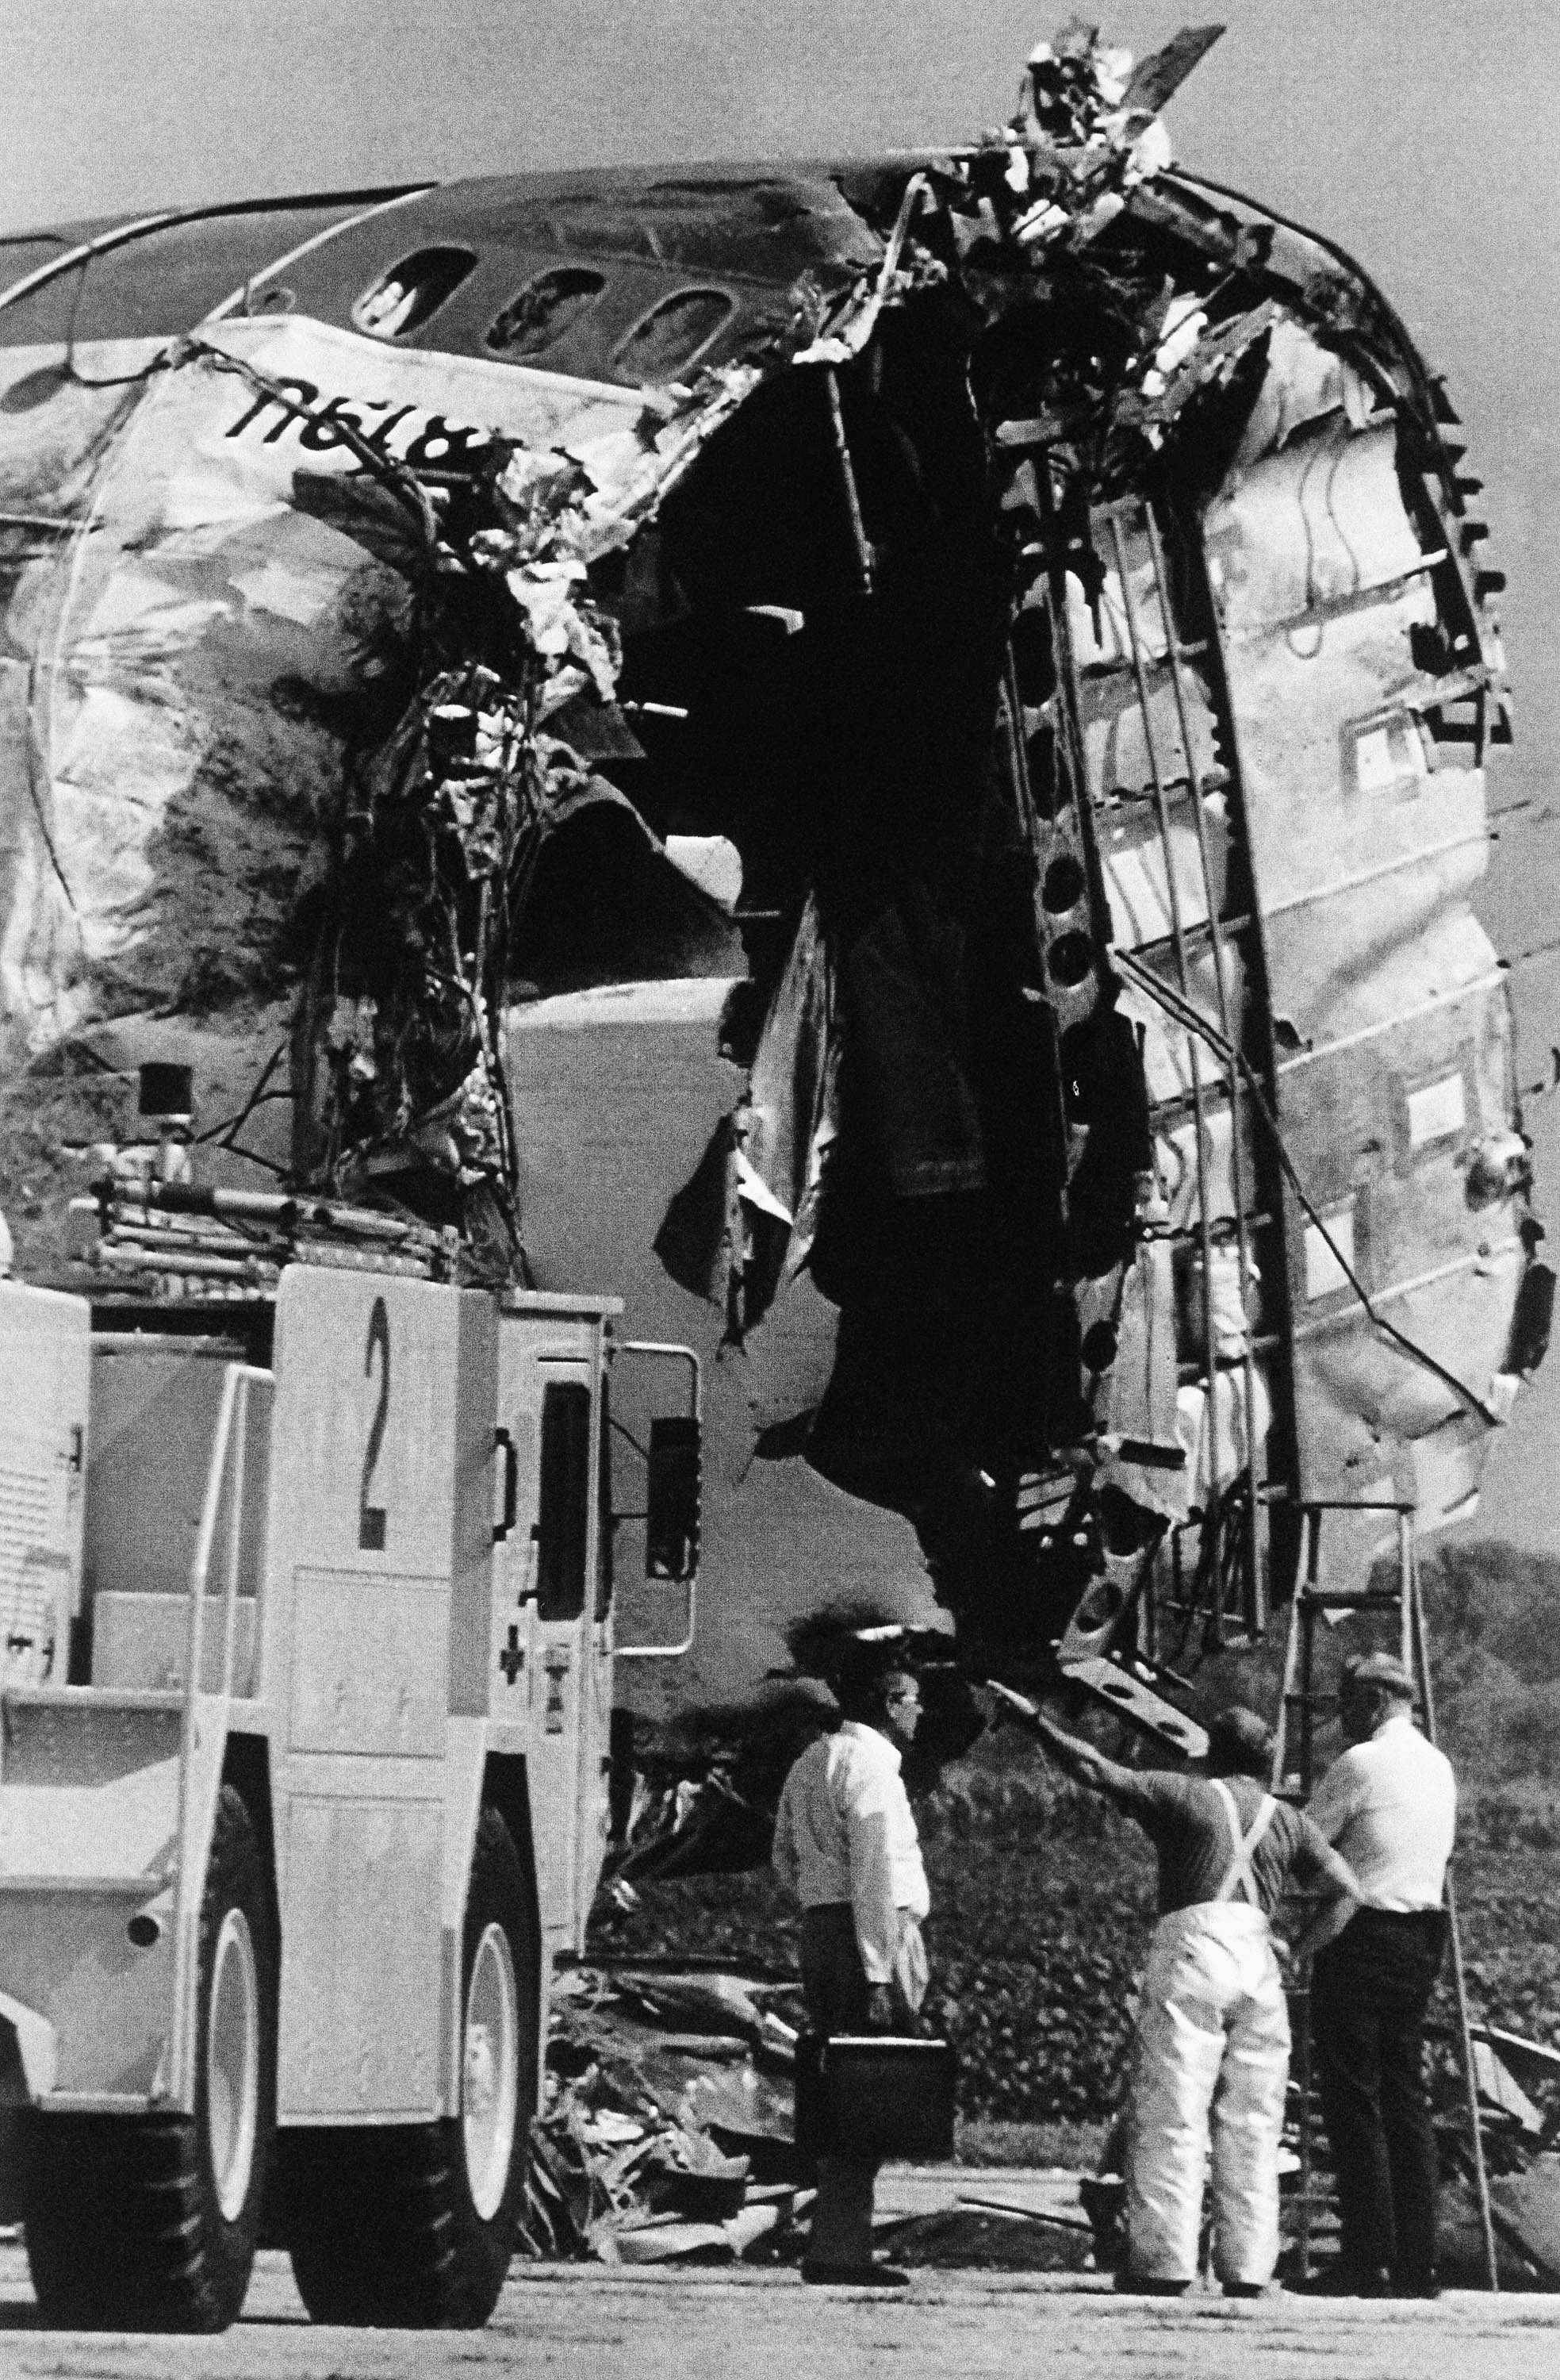 Officials look over the fuselage of United Flight 232 at the airport in Sioux City, Iowa, Monday, July 25, 1989. Fire engines were on the scene because some fuel was left in the wreckage. Later the fuselage was moved into a nearby hanger where officials could inspect it closer.